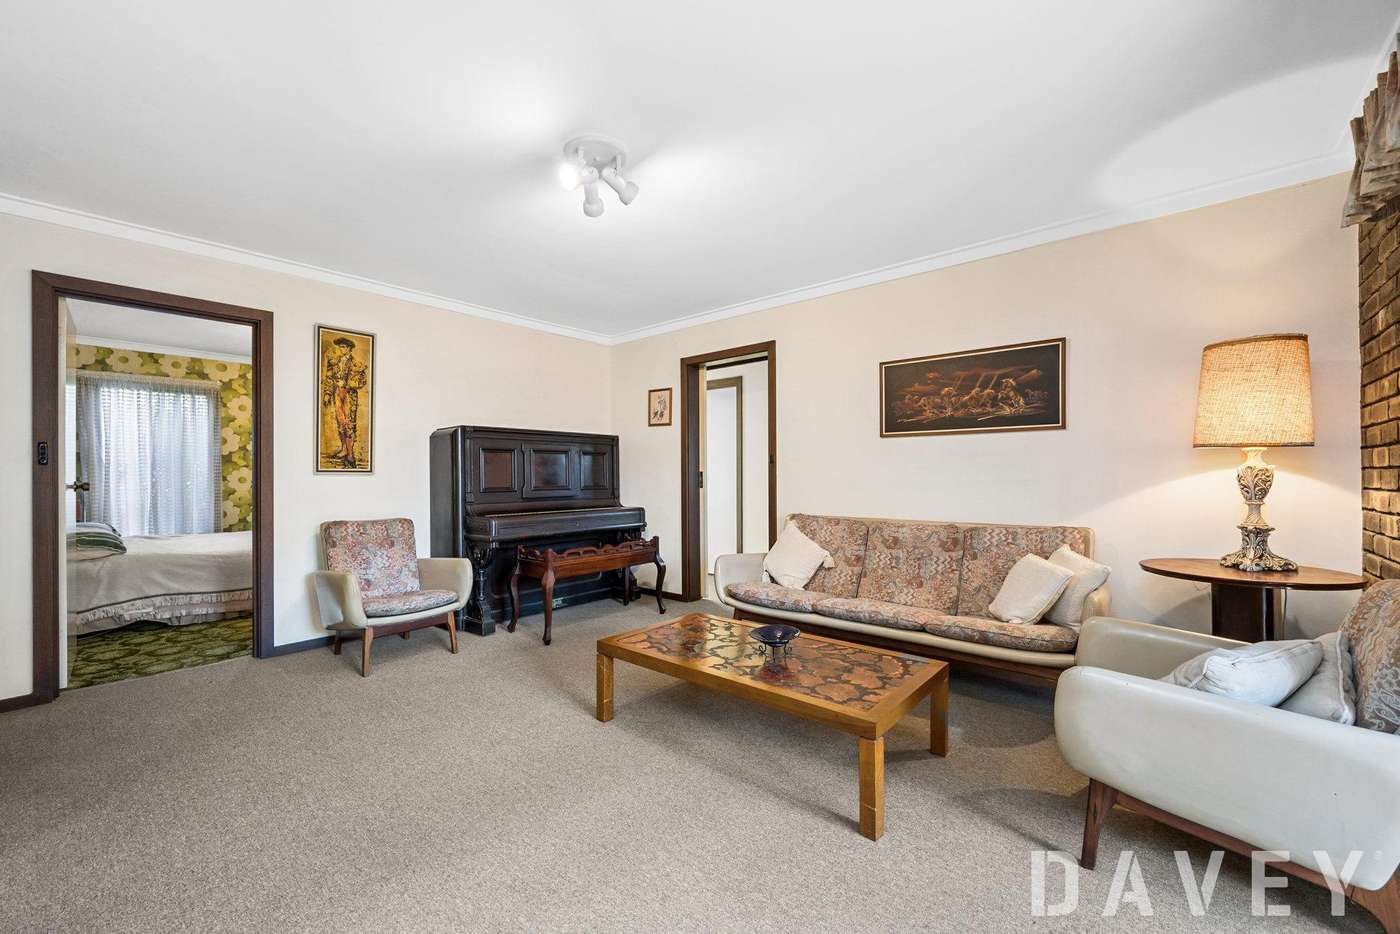 Main view of Homely house listing, 21 Alder Way, Duncraig WA 6023